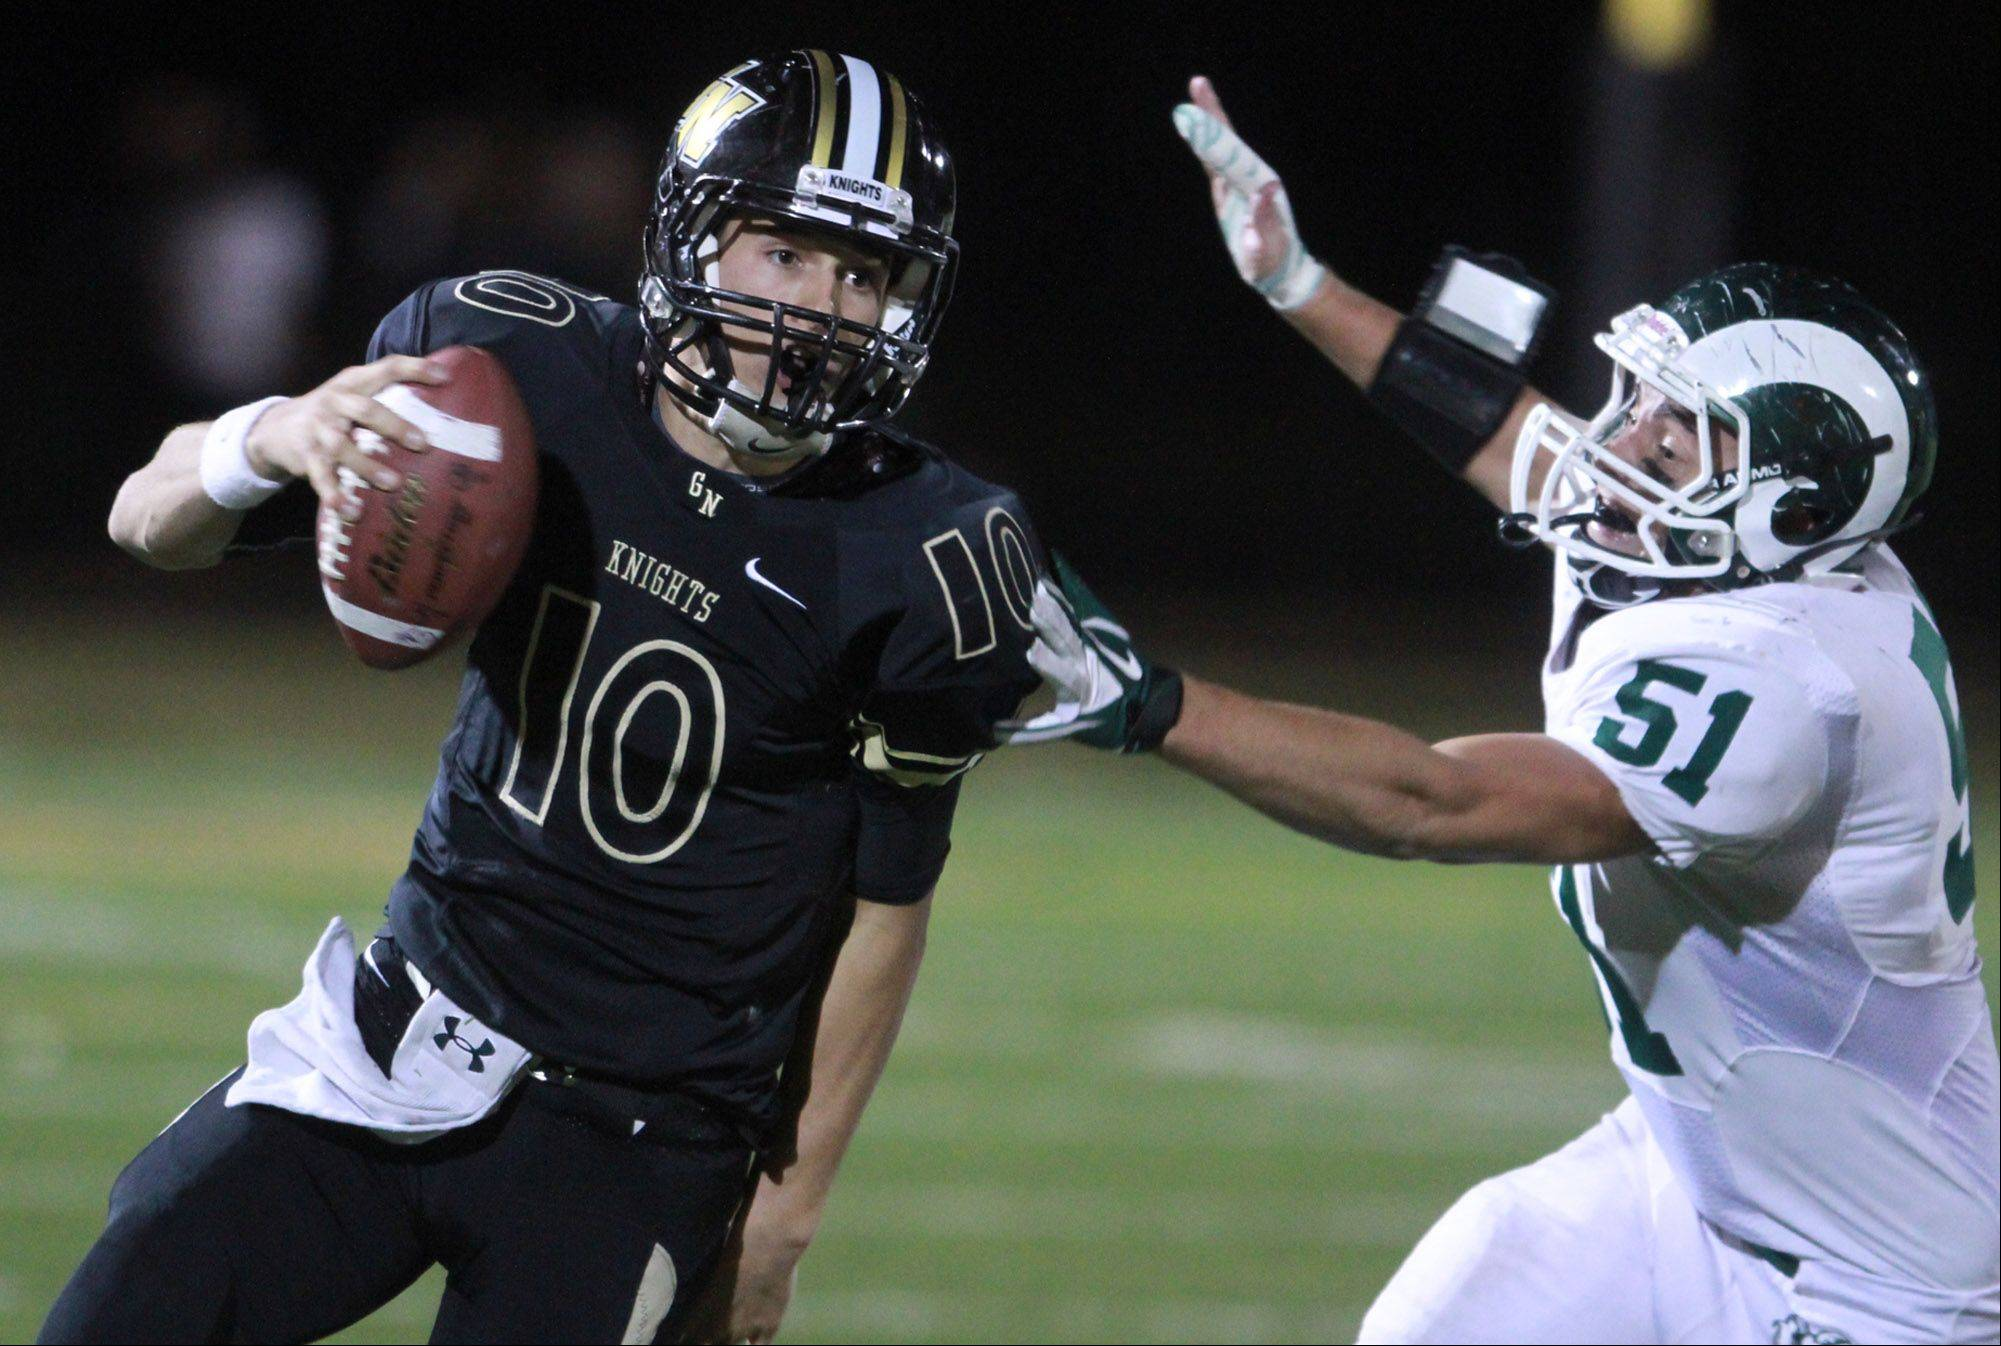 Grayslake North quarterback AJ Fish slips past Grayslake Central defender Alex McCully.